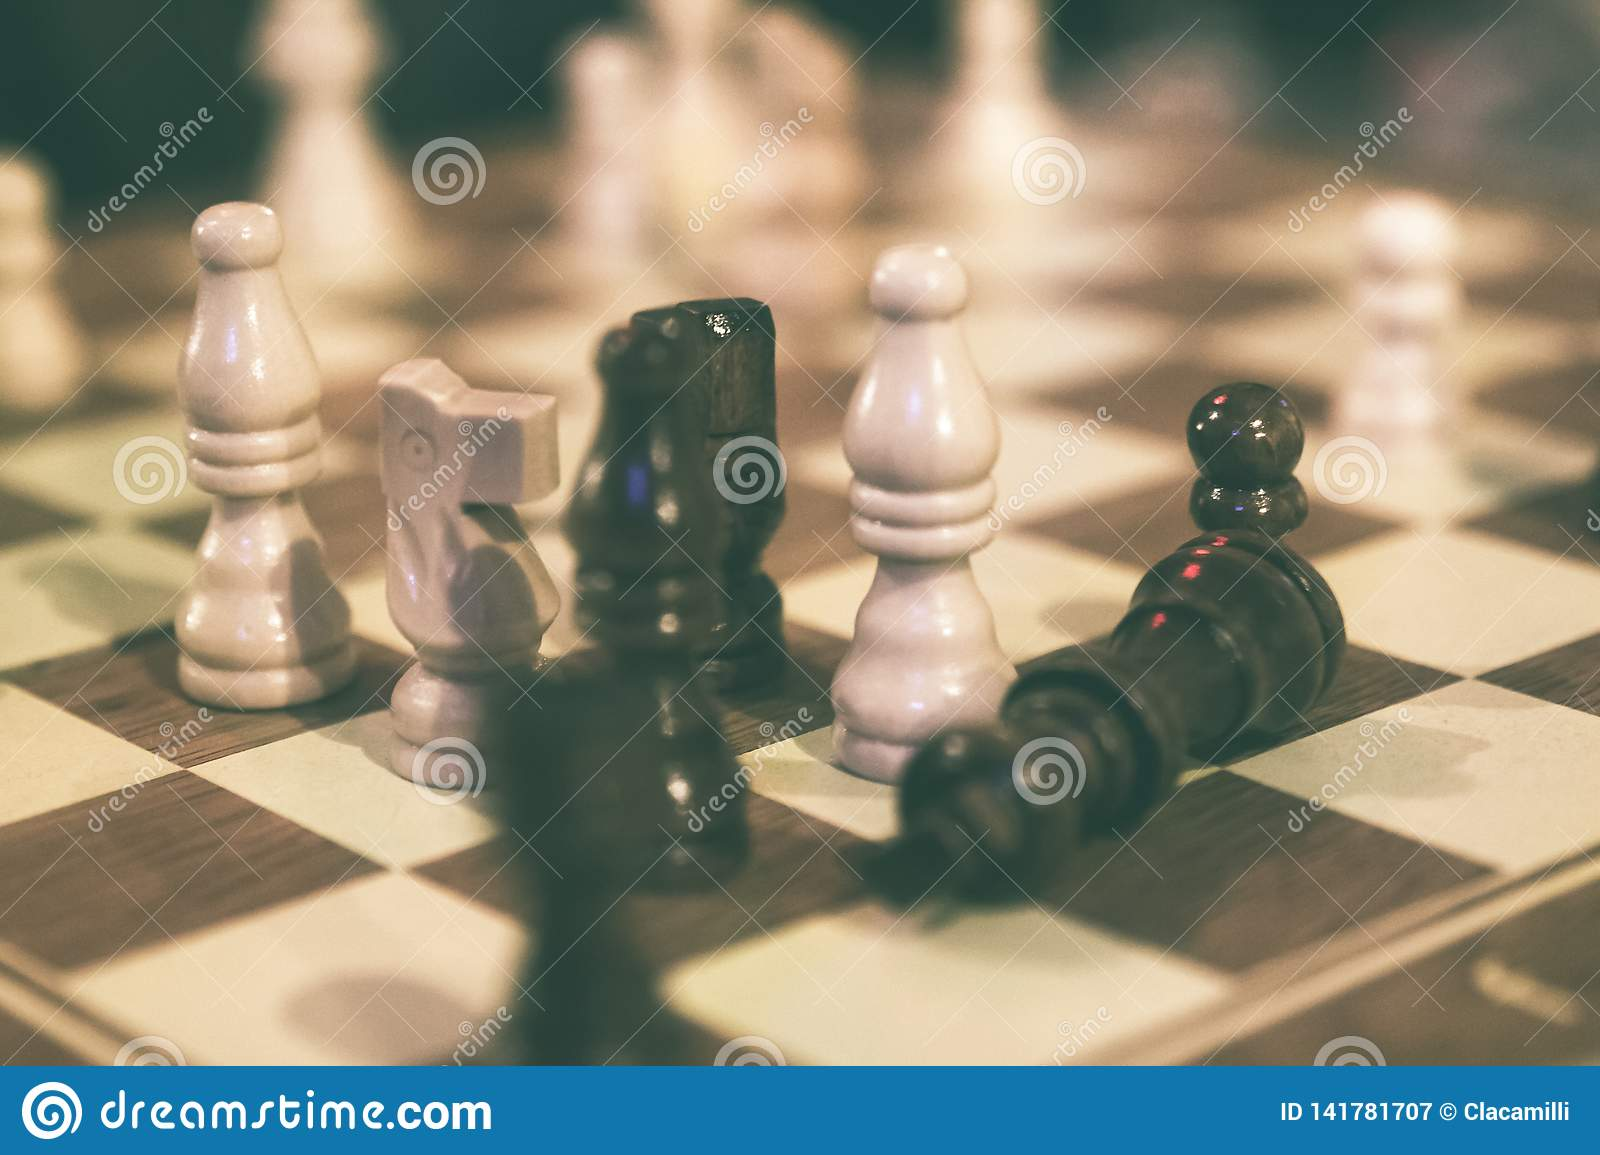 Checkers during a chess game